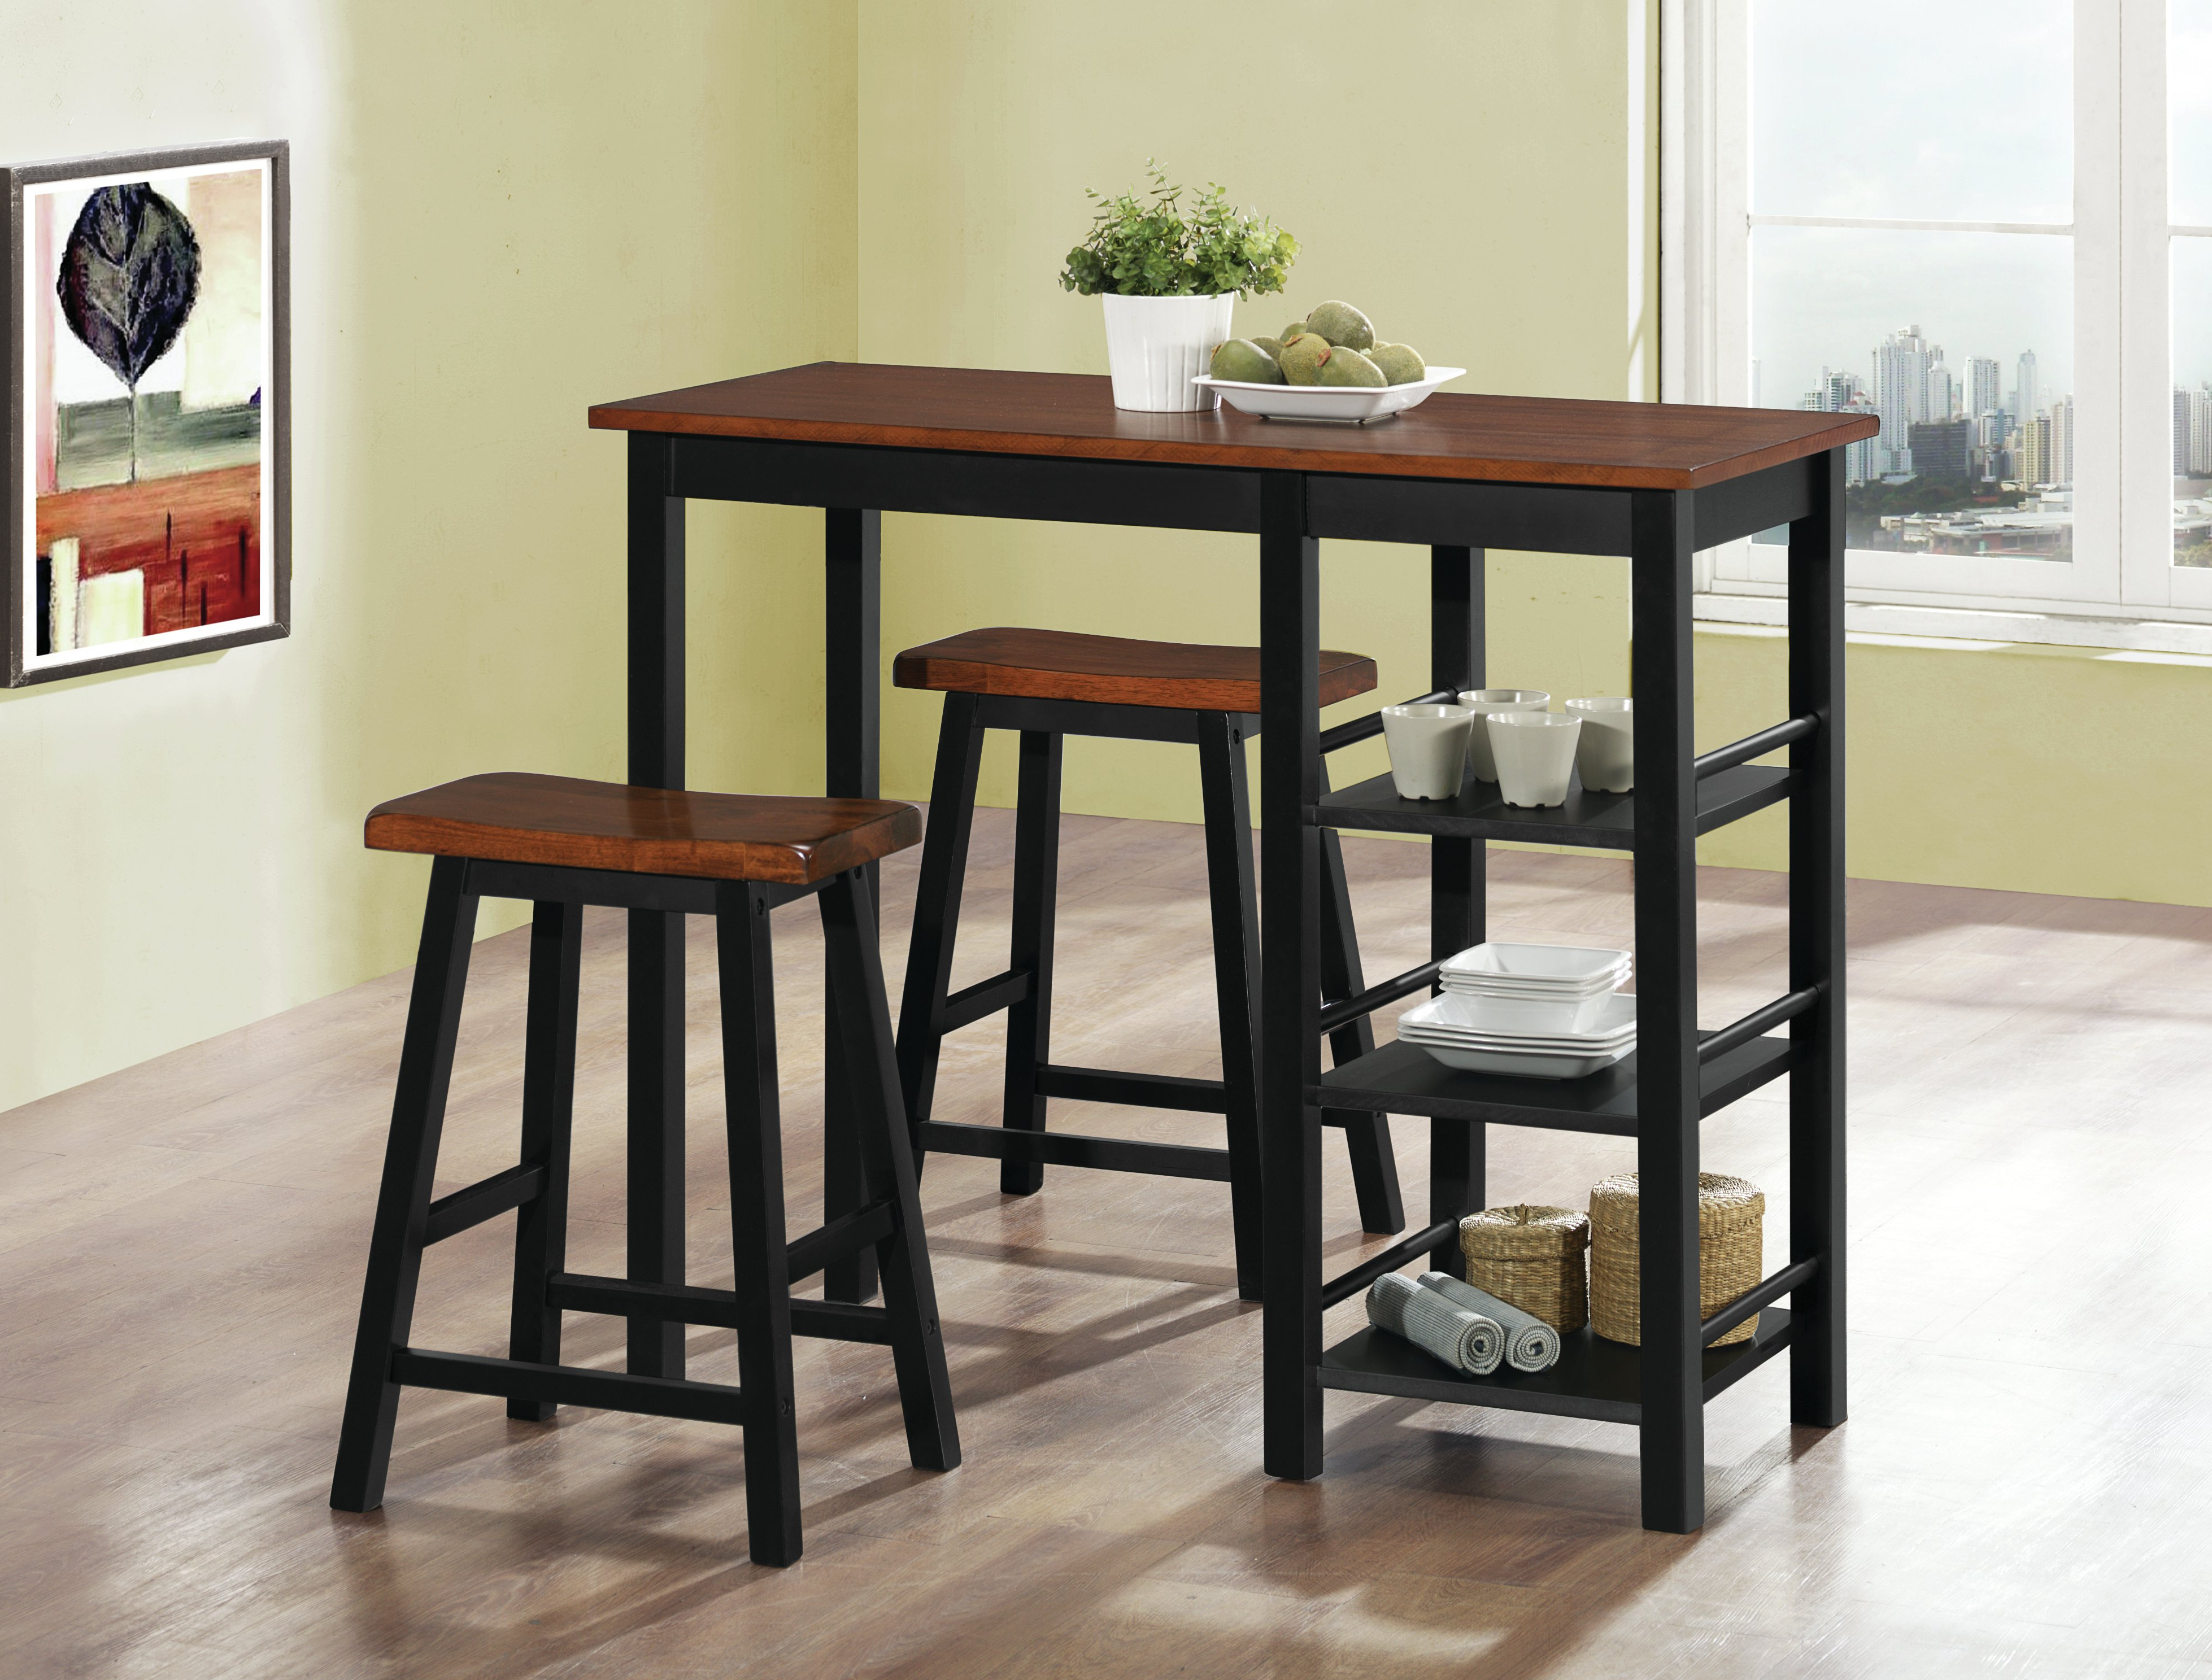 Berrios 3 Piece Counter Height Dining Sets Within Newest Berrios 3 Piece Counter Height Dining Set (View 11 of 20)